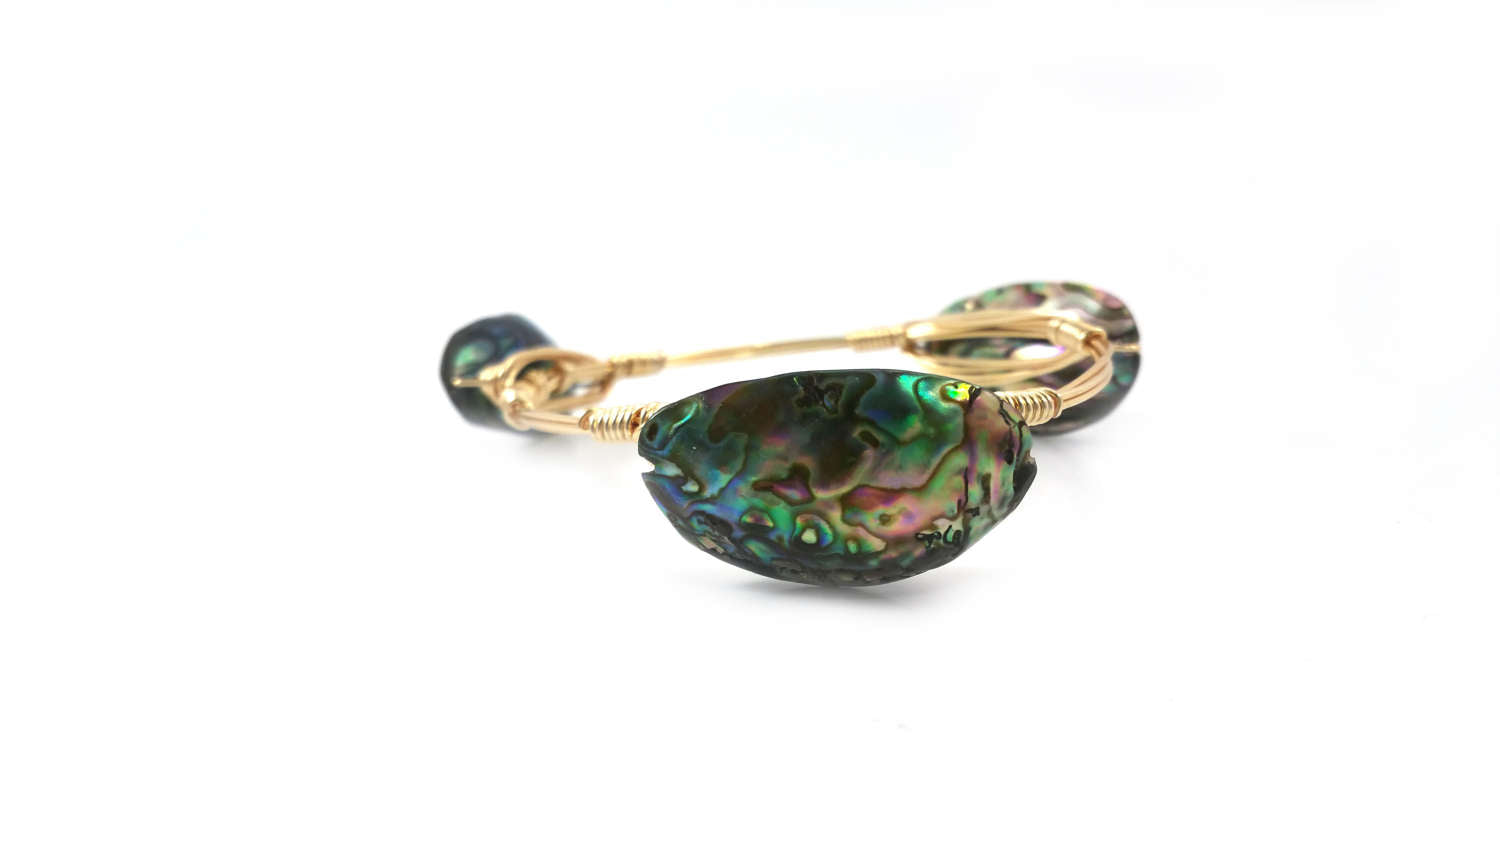 Abalone shell bangle bracelet/ Paua shell bangle bracelet